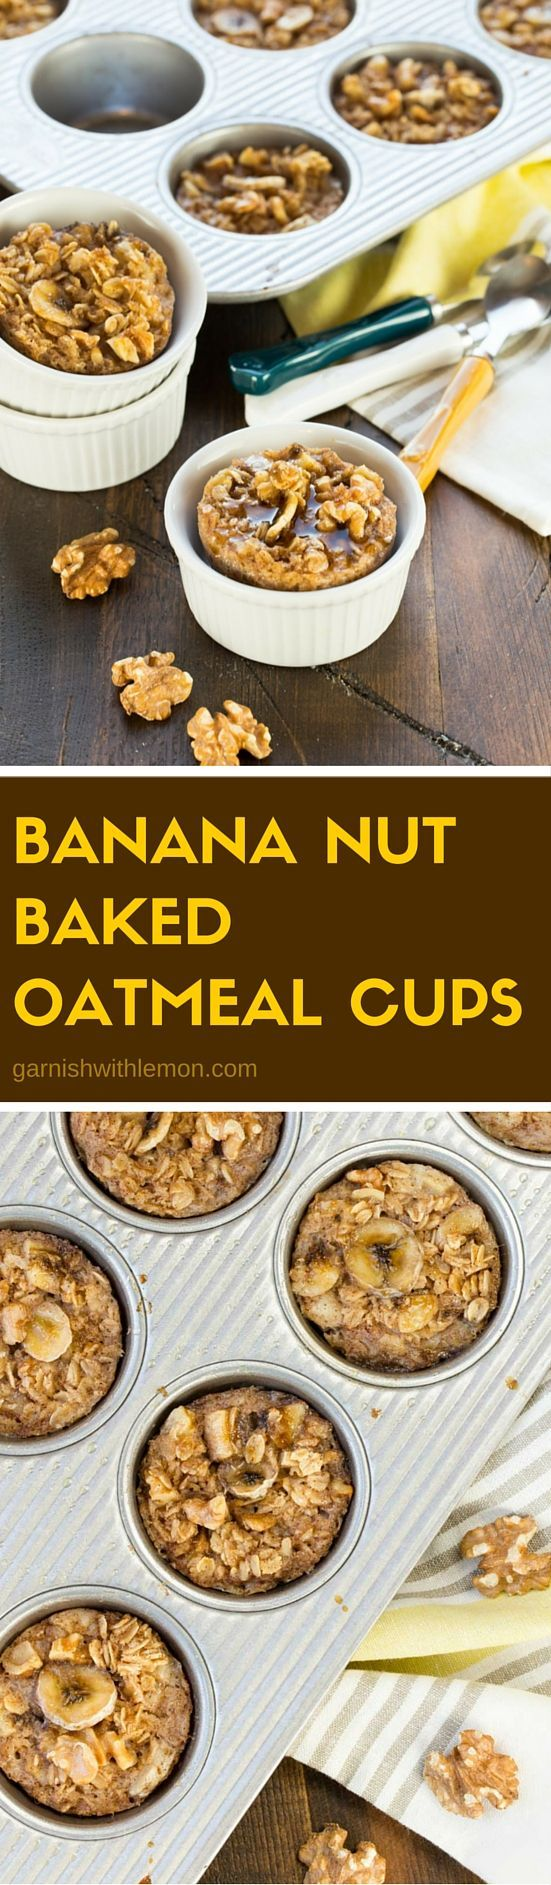 Looking for a healthy, make-ahead breakfast? Don't miss this Banana Nut Baked Oatmeal Cups recipe!